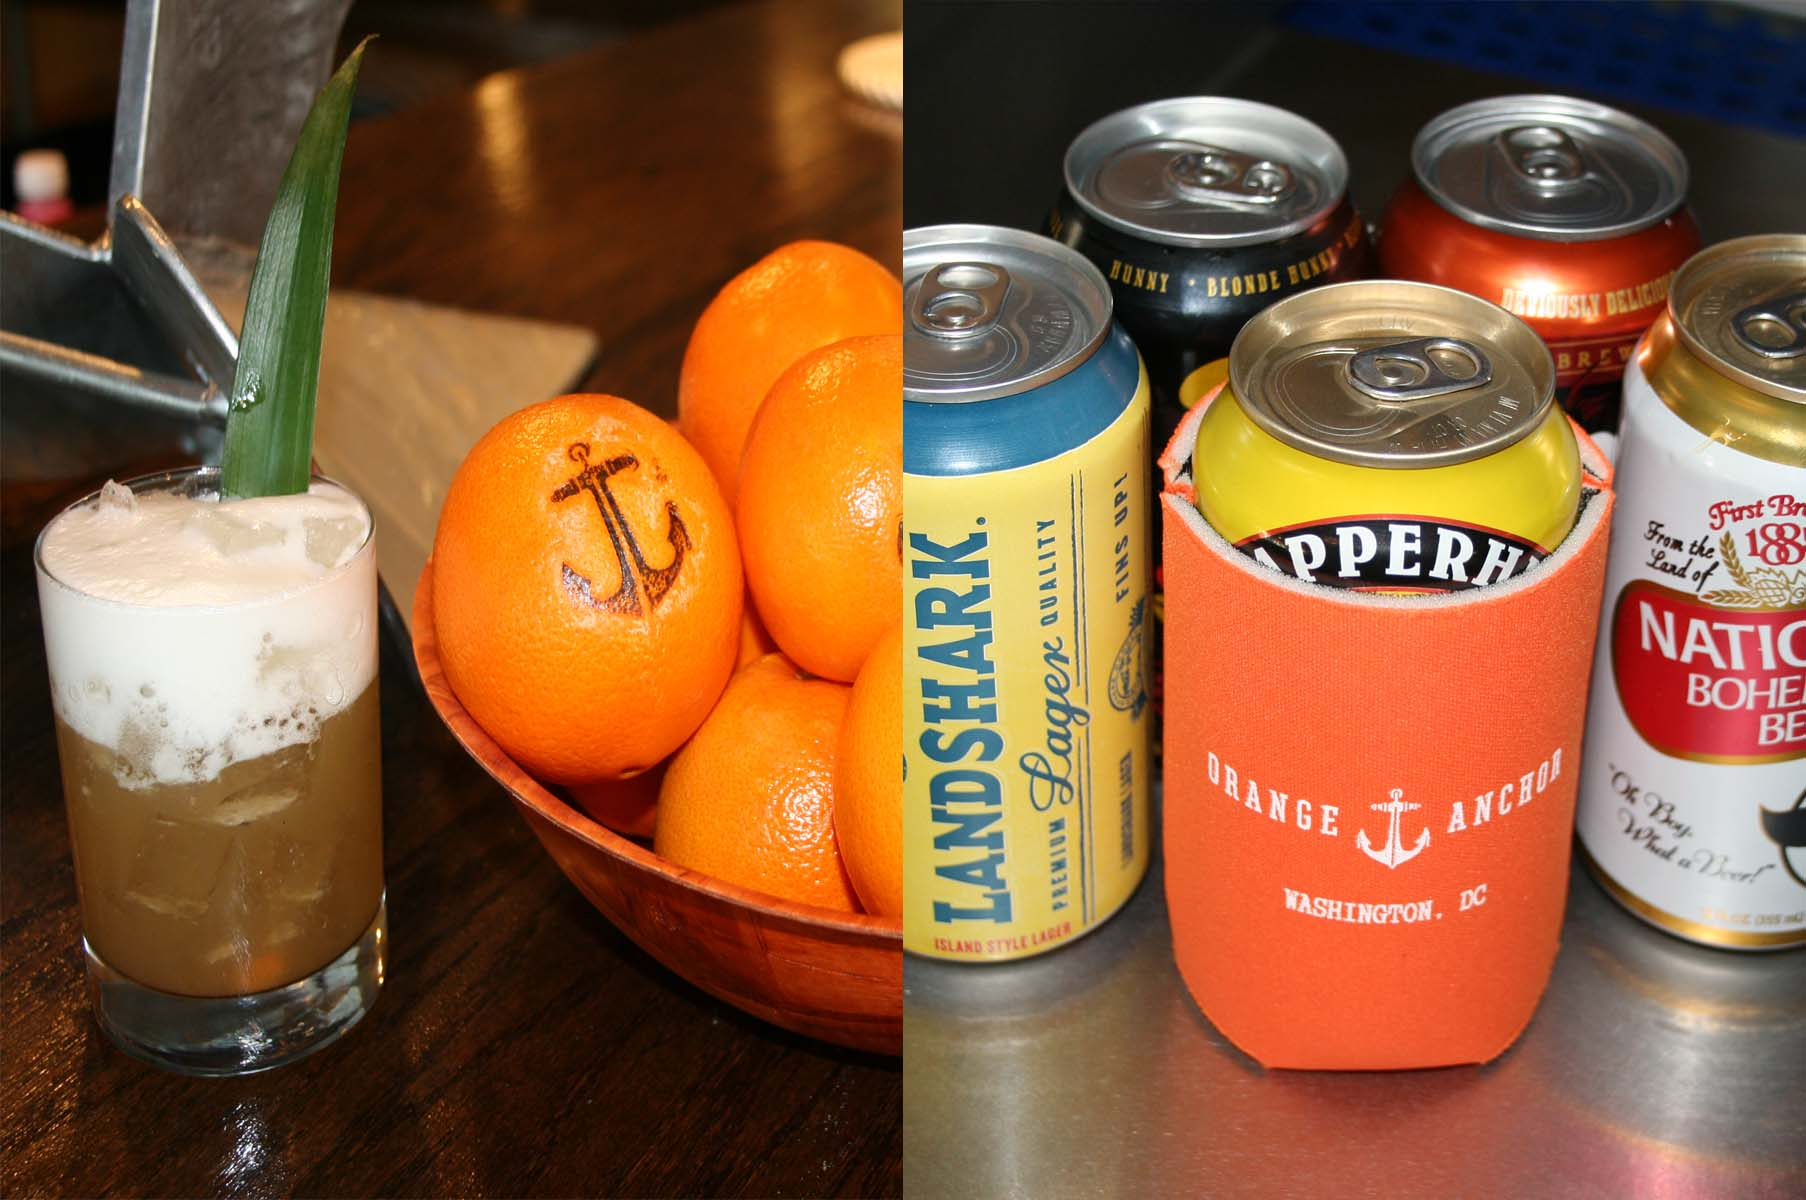 The Marlin Spike (left) is made with Avuá Cachaça, a Brazilian rum, smoked pineapple and spiced syrup over ice topped with lime foam. Ten canned beers (right) will be served in koozies. (Photos: Mark Heckathorn/DC on Heels)